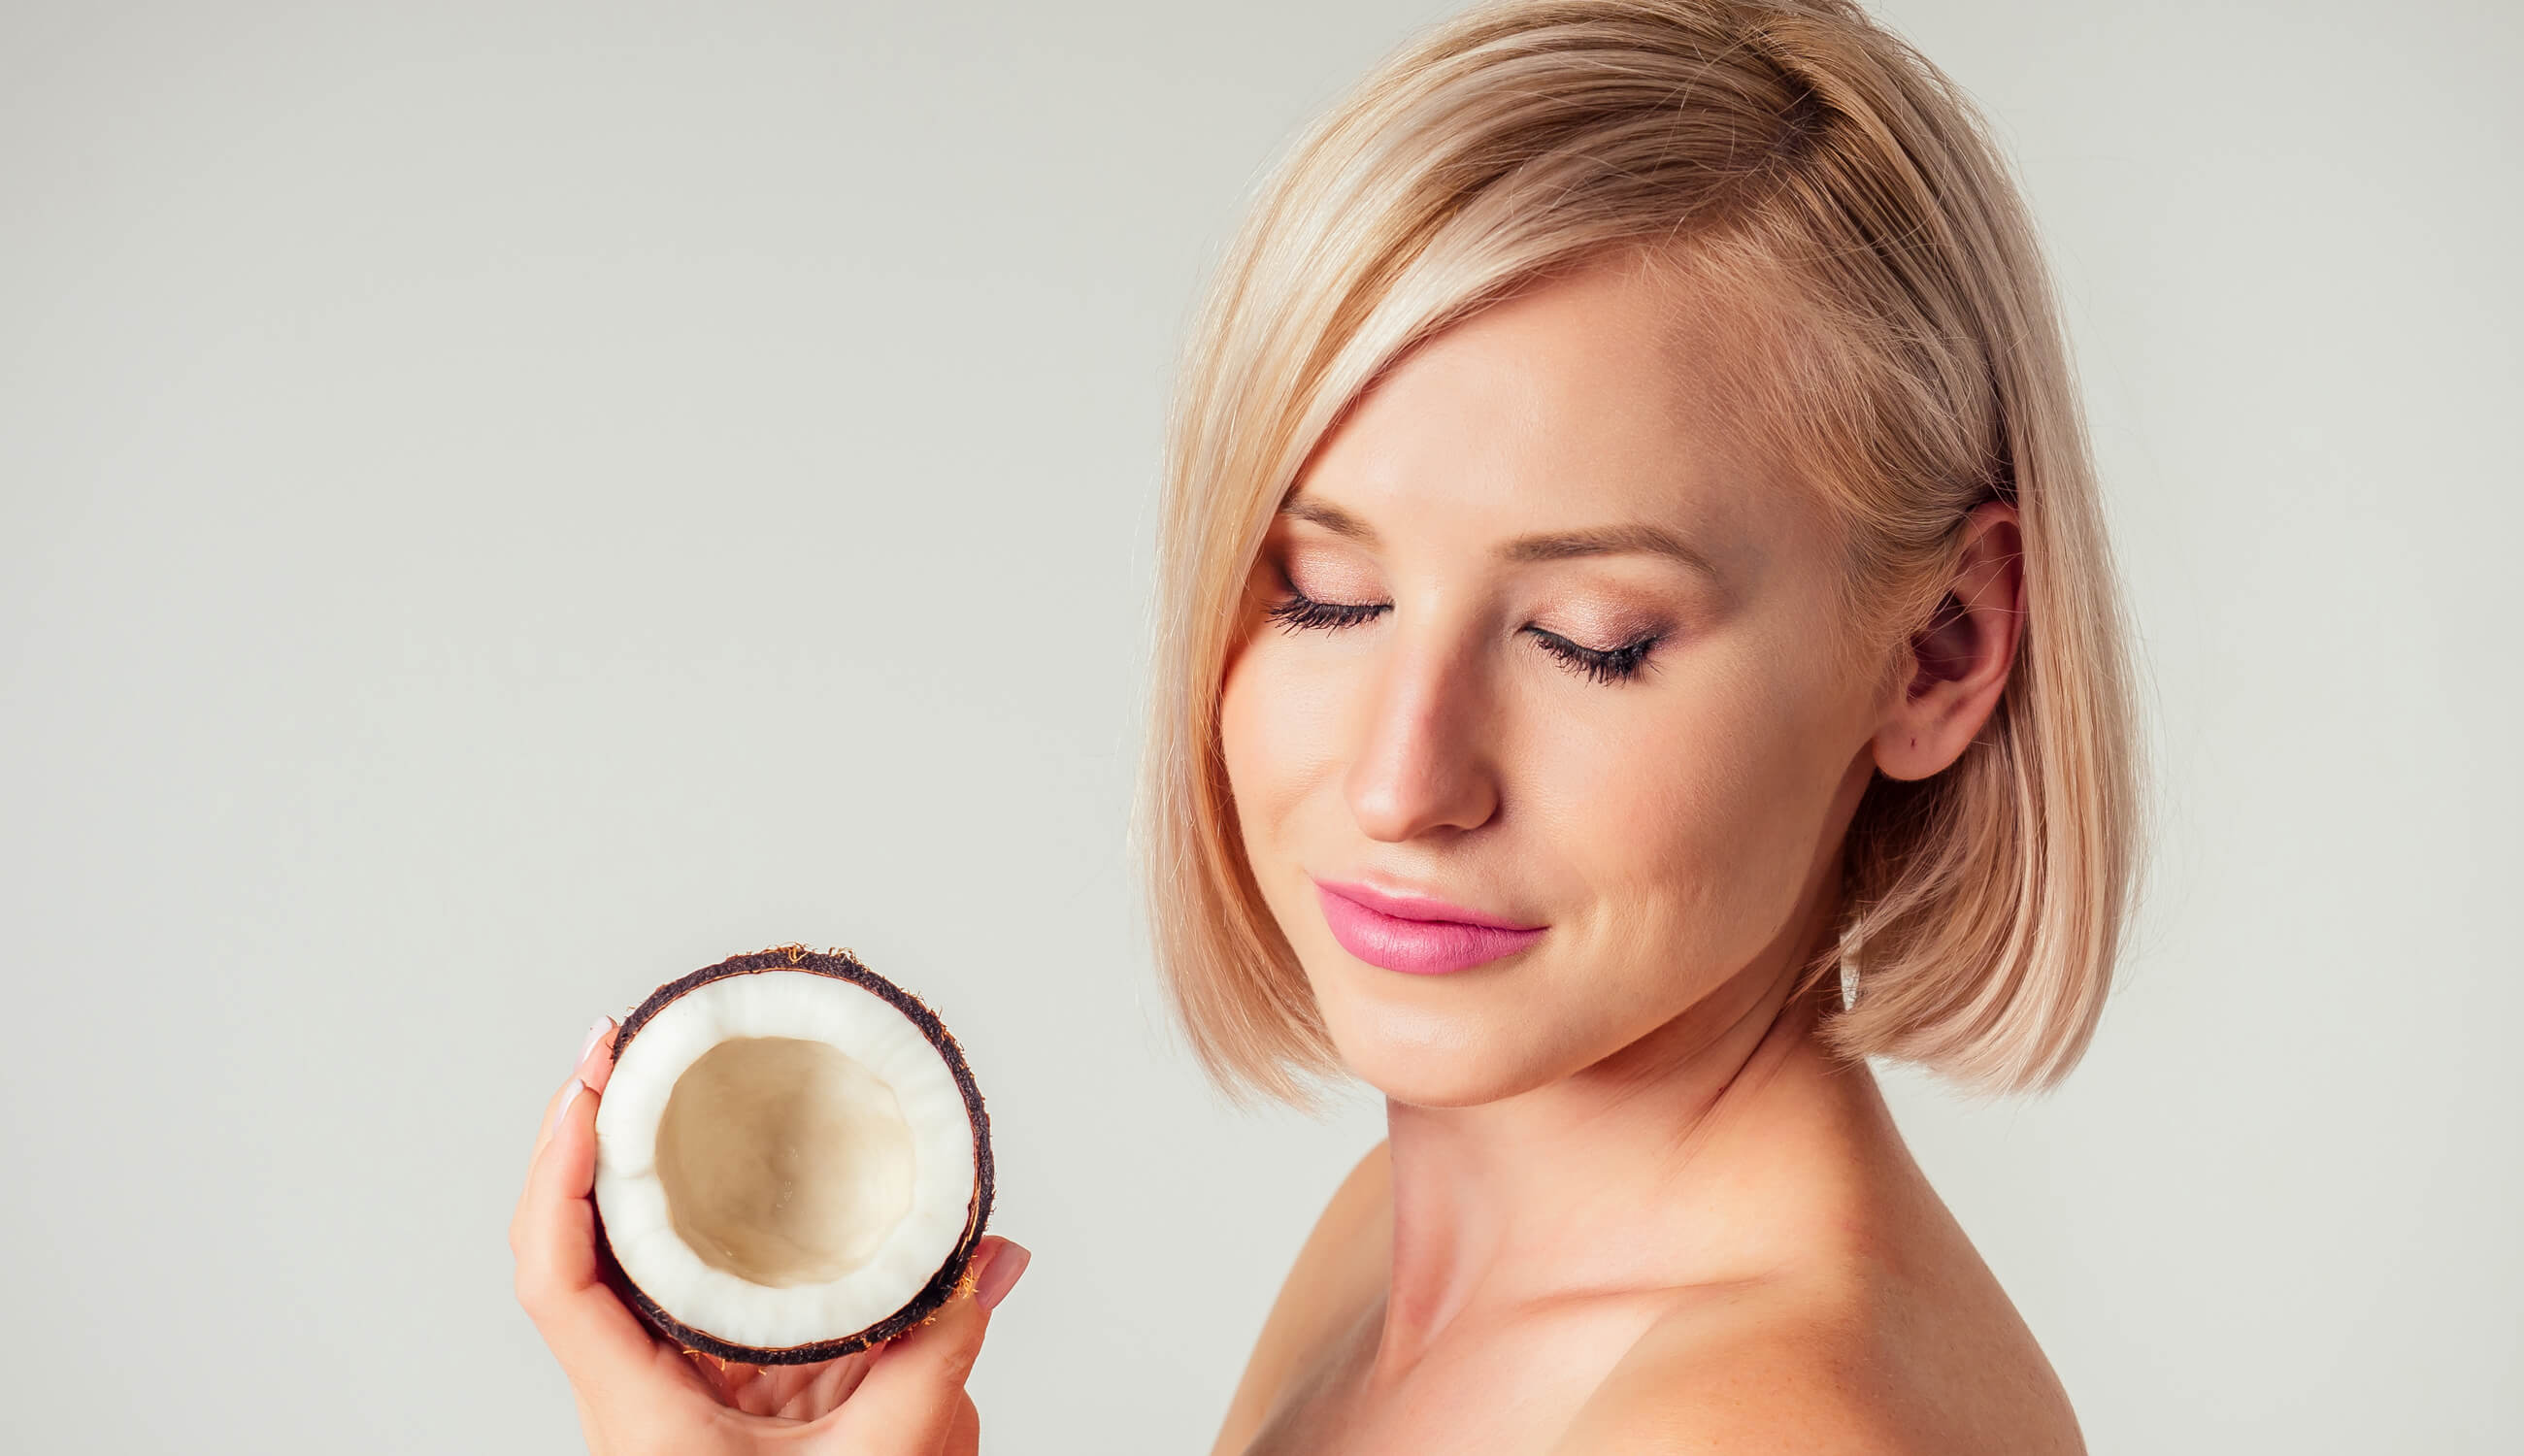 Is Coconut Oil Good for Skin?